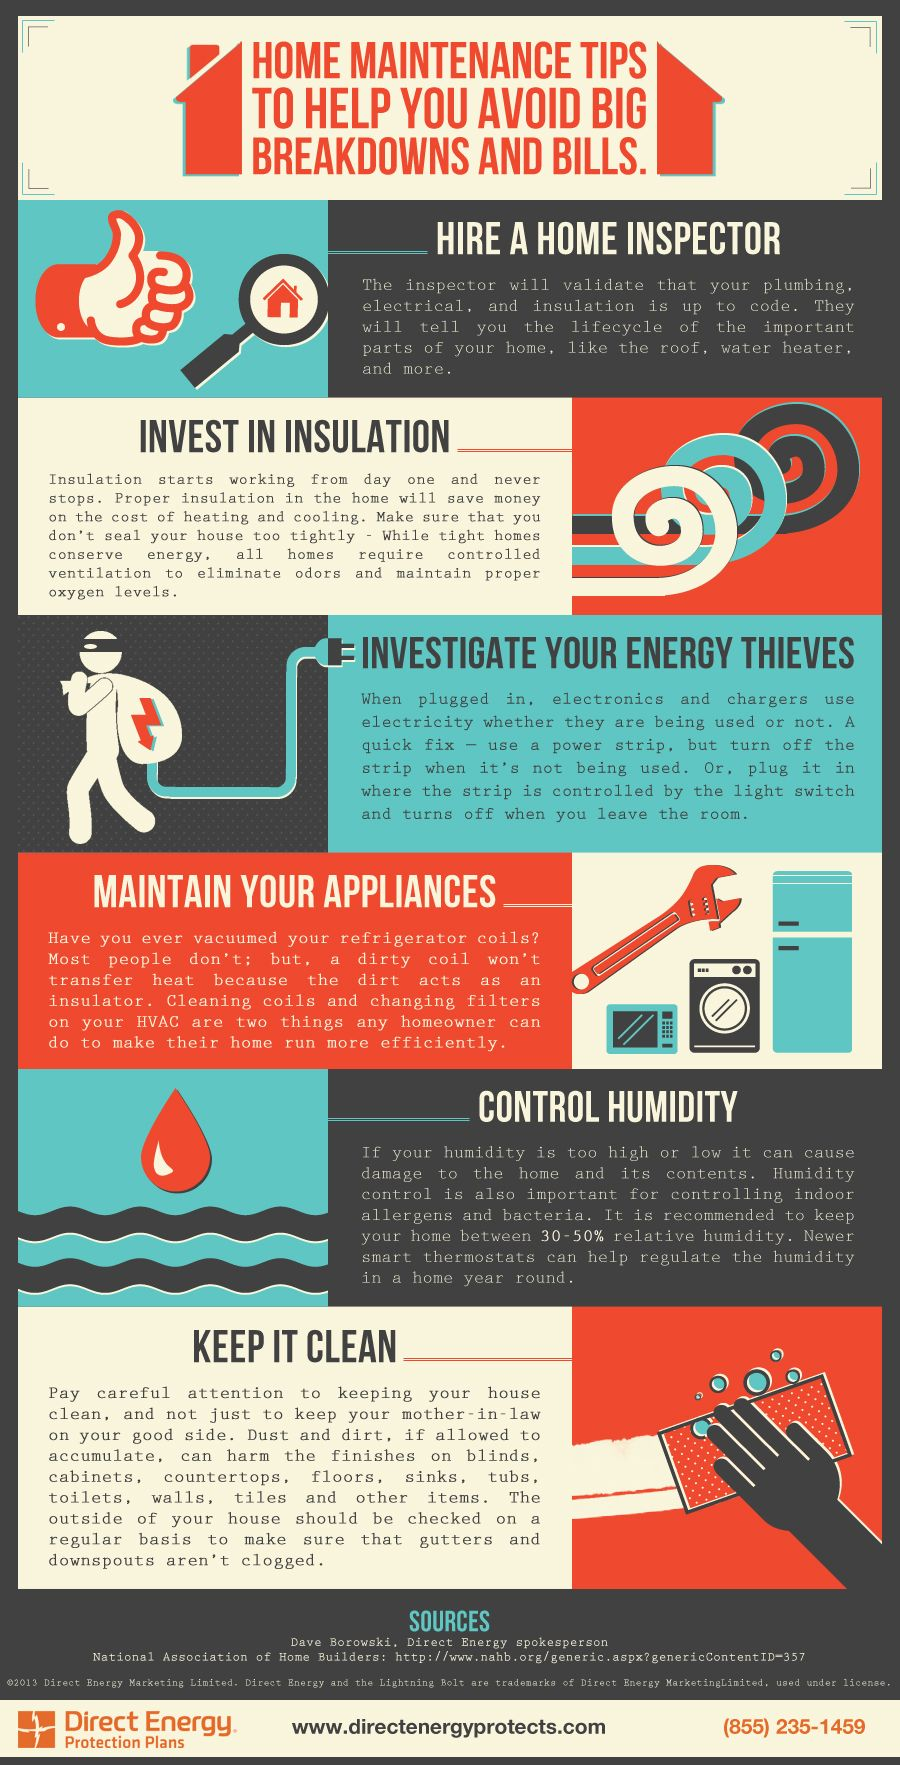 homemaintenancetips.jpg (900×1765) Home maintenance